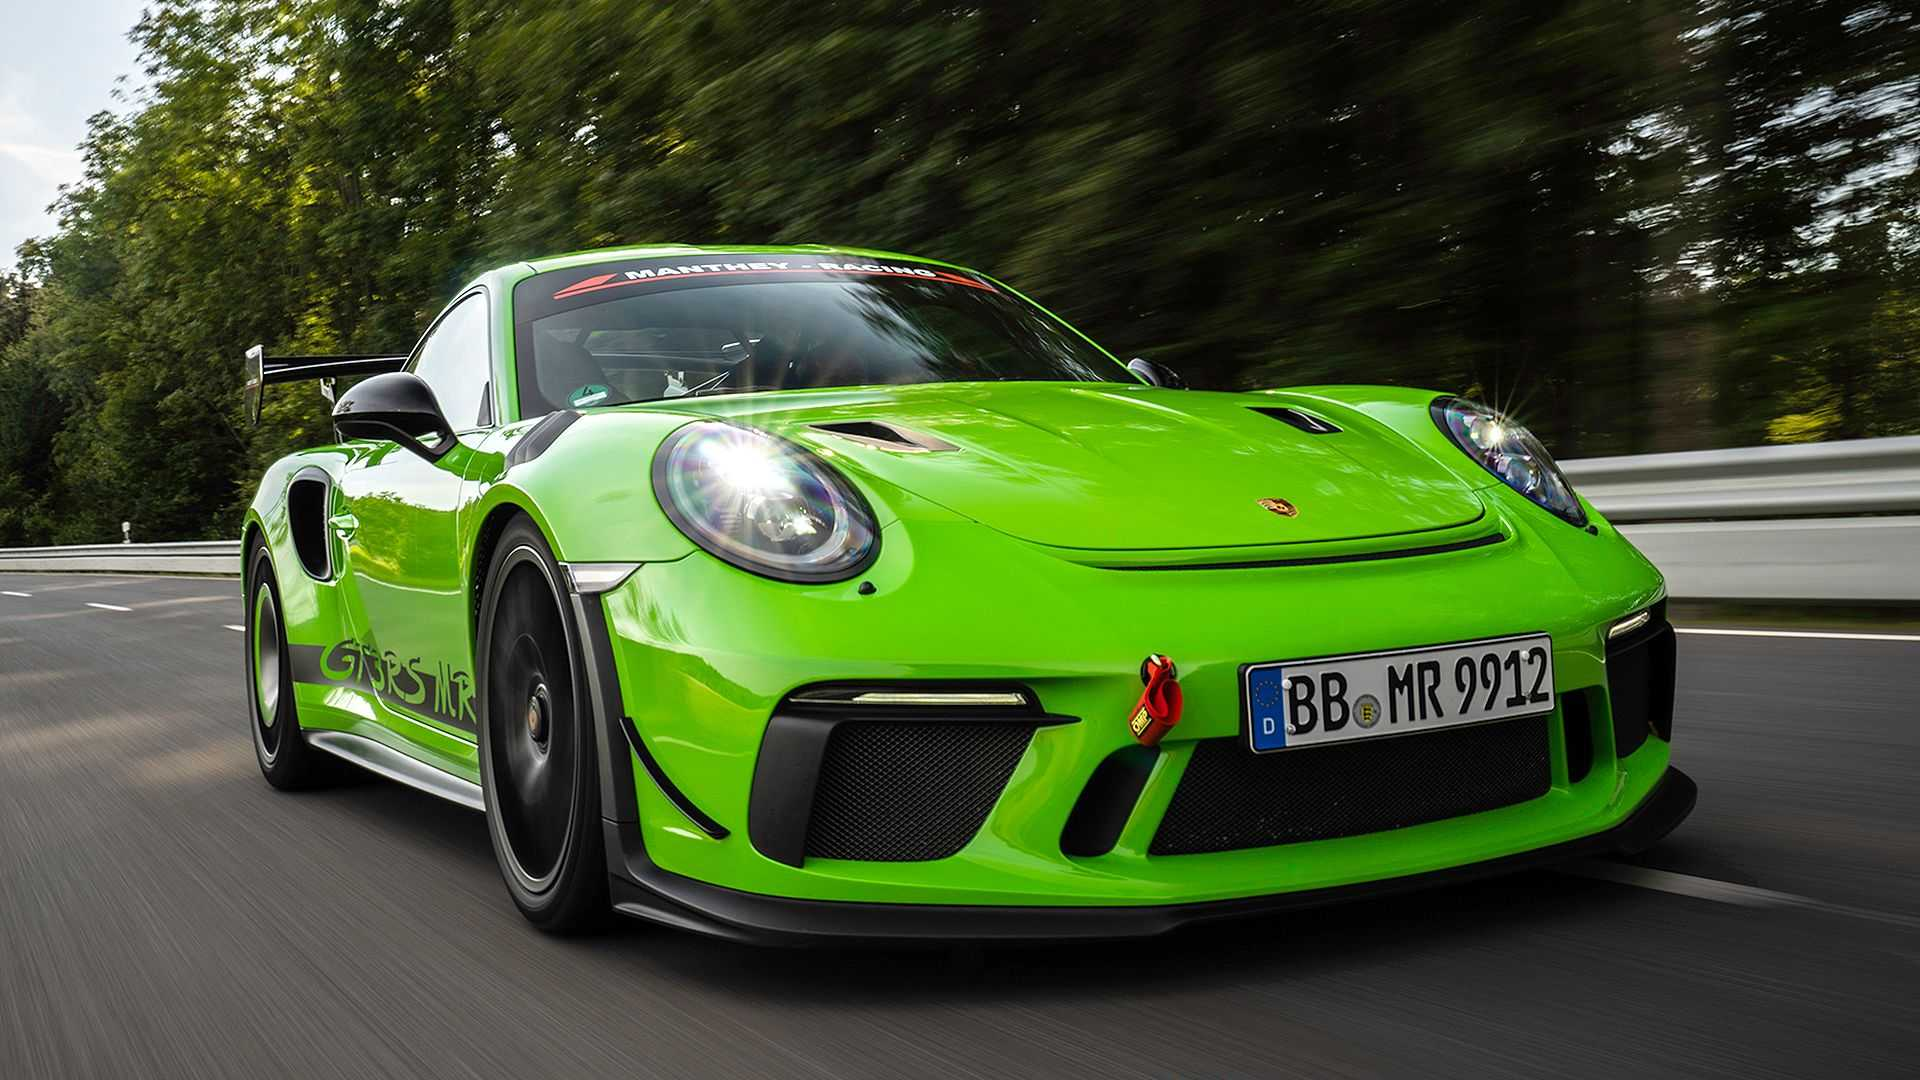 Porsche-911-GT3-RS-by-Manthey-Racing-3